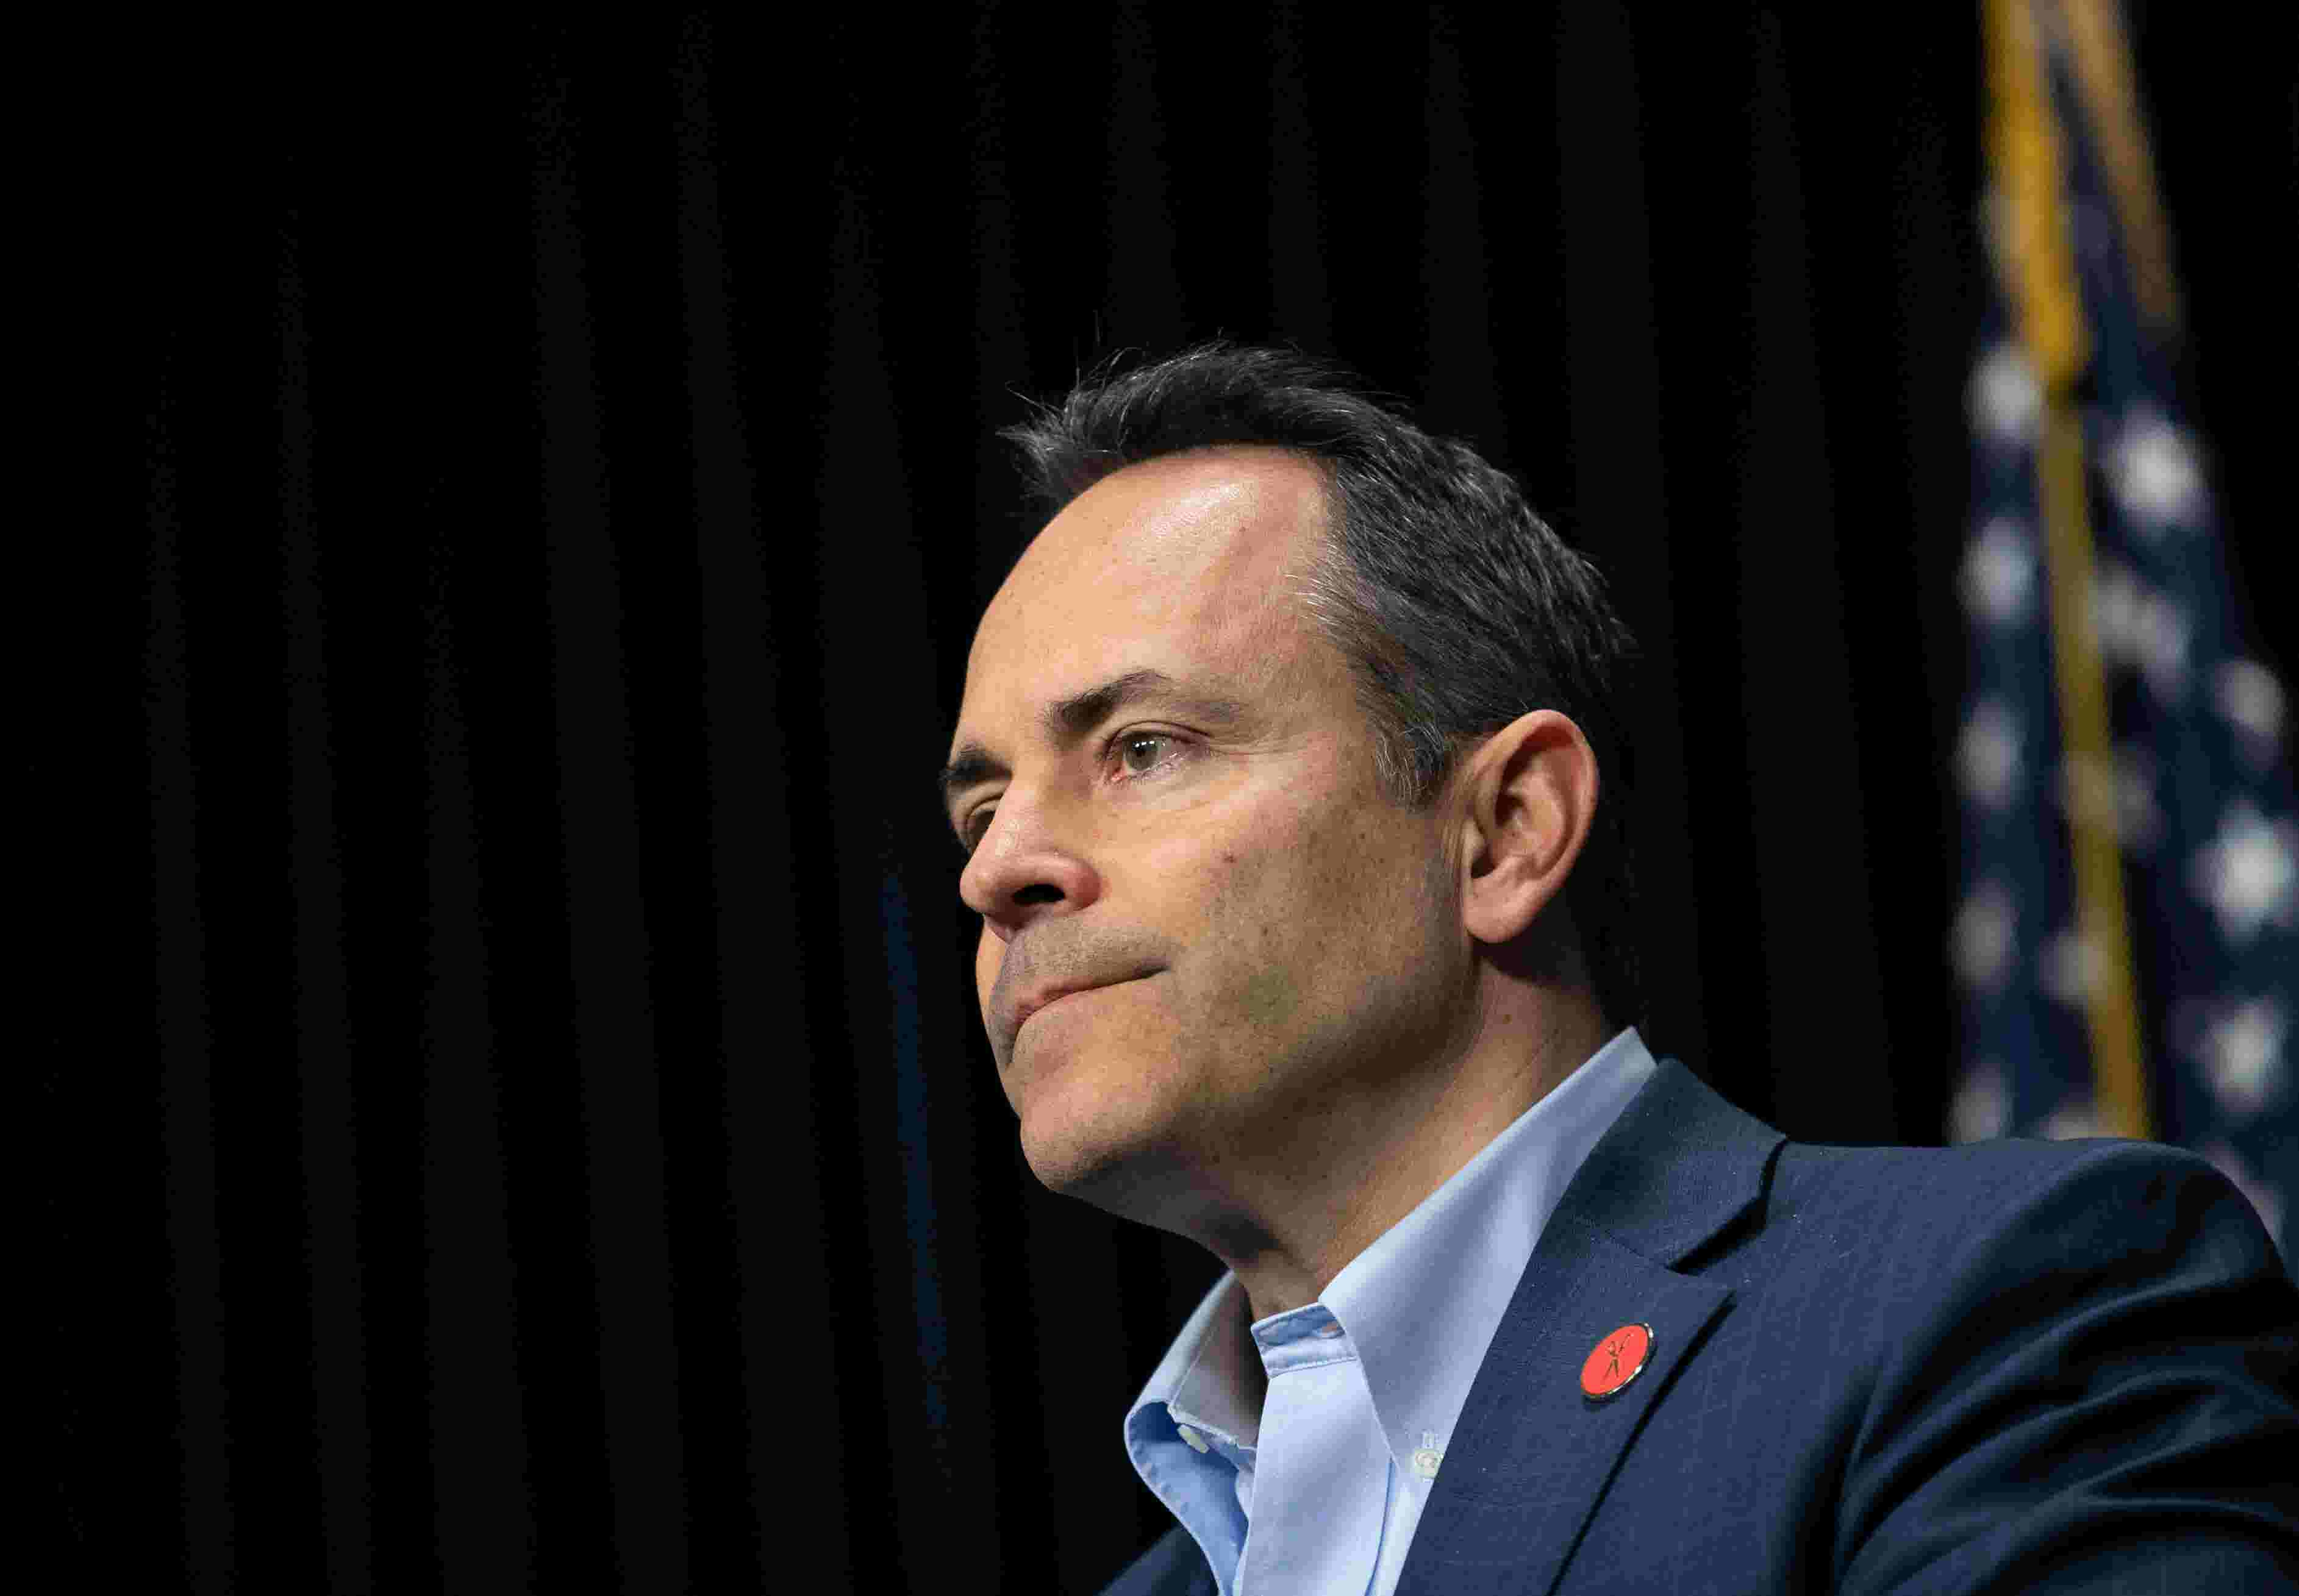 Kentucky's Matt Bevin now the most unpopular governor in US, poll says